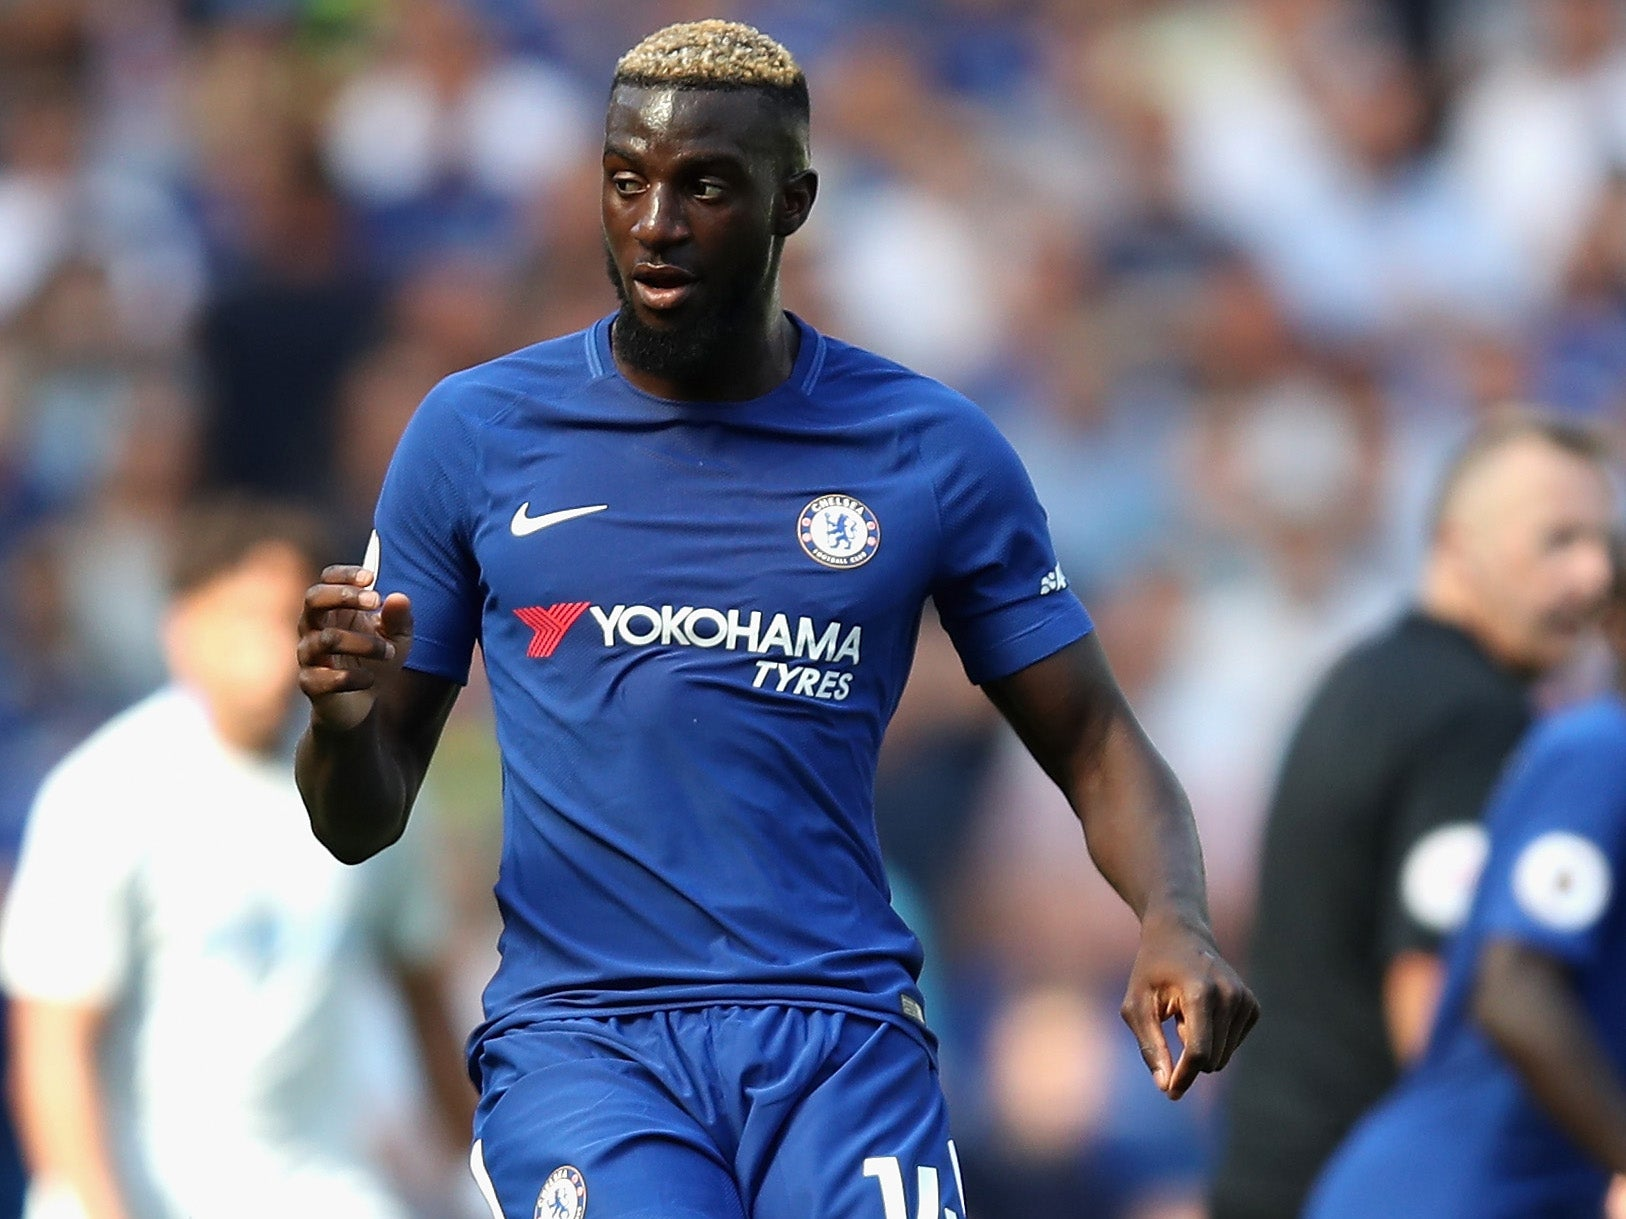 Tiemoue Bakayoko insists he is not scared of Danny Drinkwater as